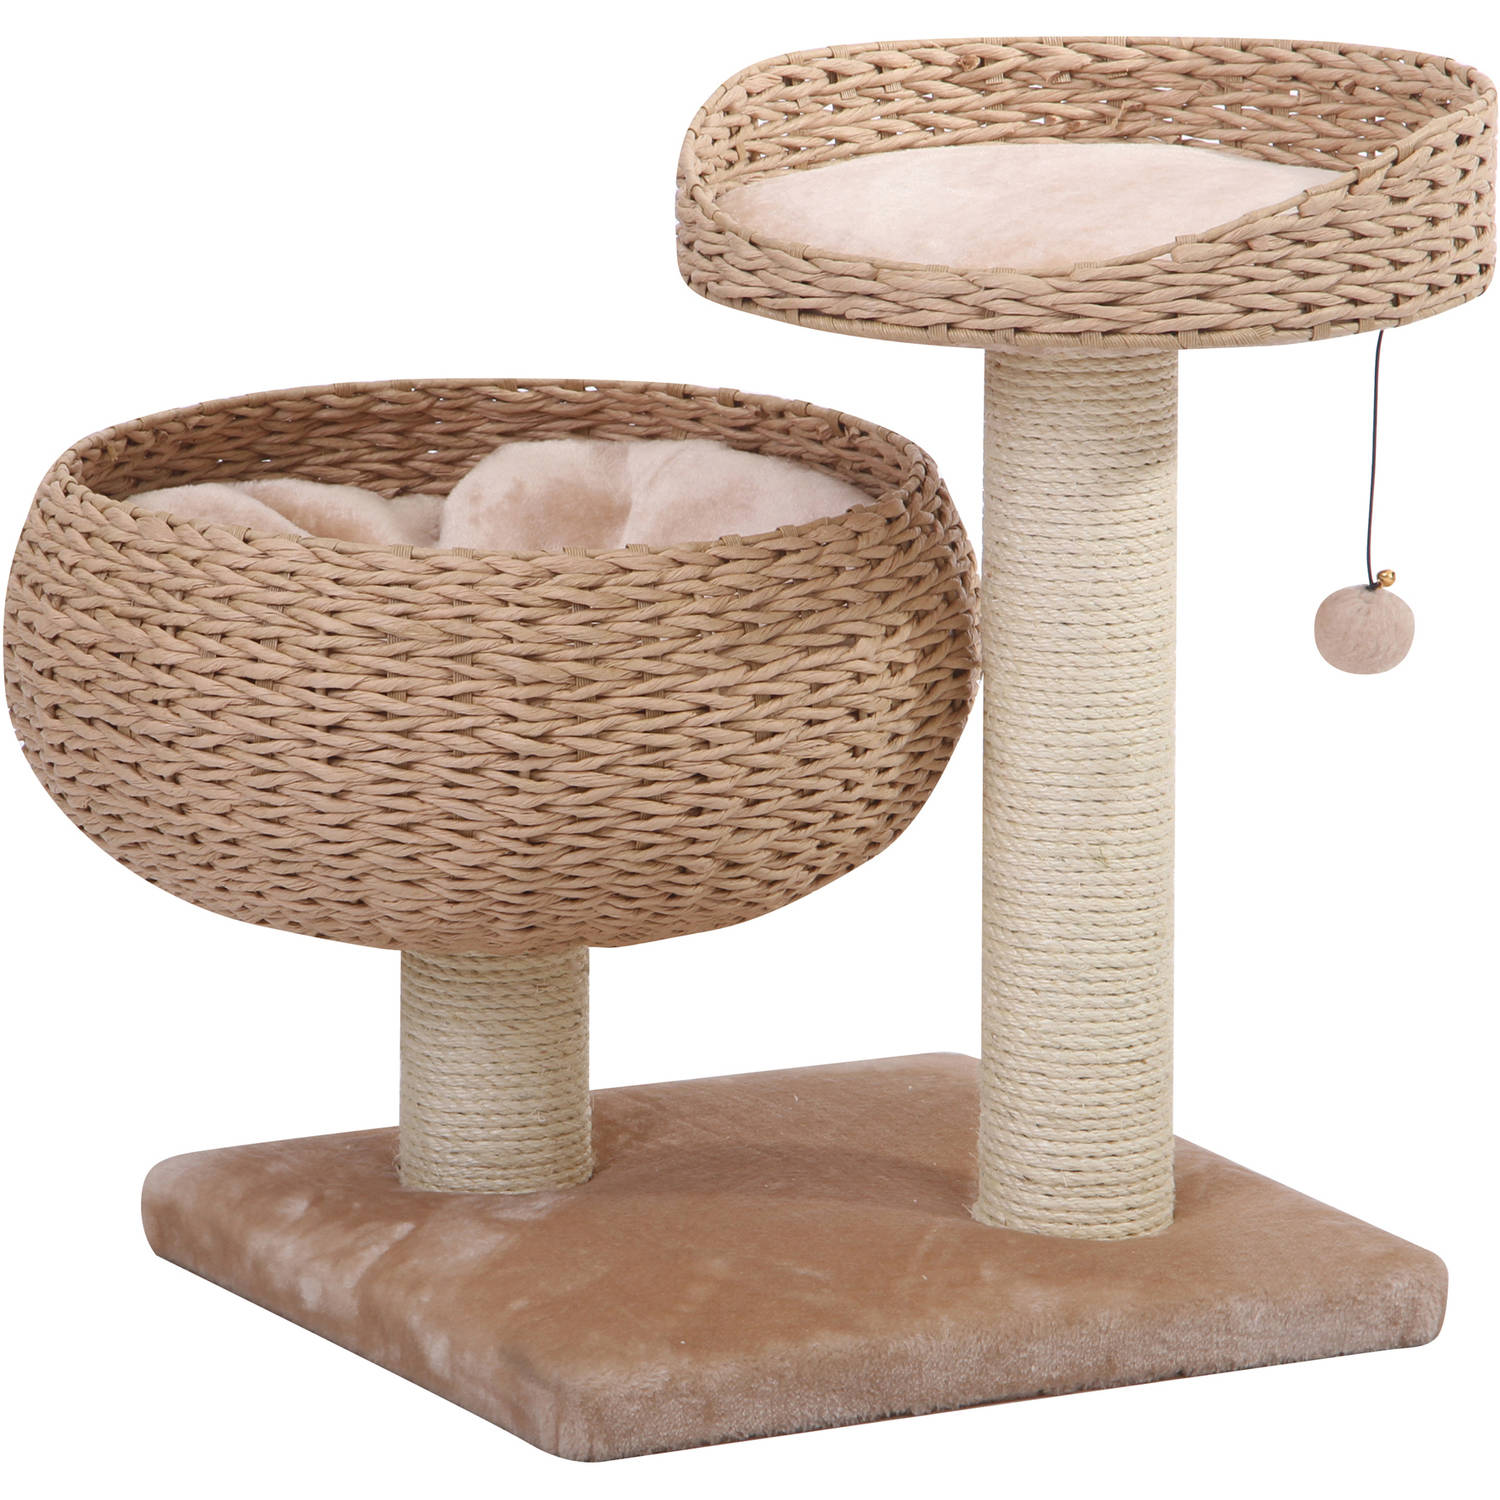 Petpals Group Cozy Paper Rope Perch with Bowl Lounge With Plush Fleece Pillow and Duel Sisal Posts